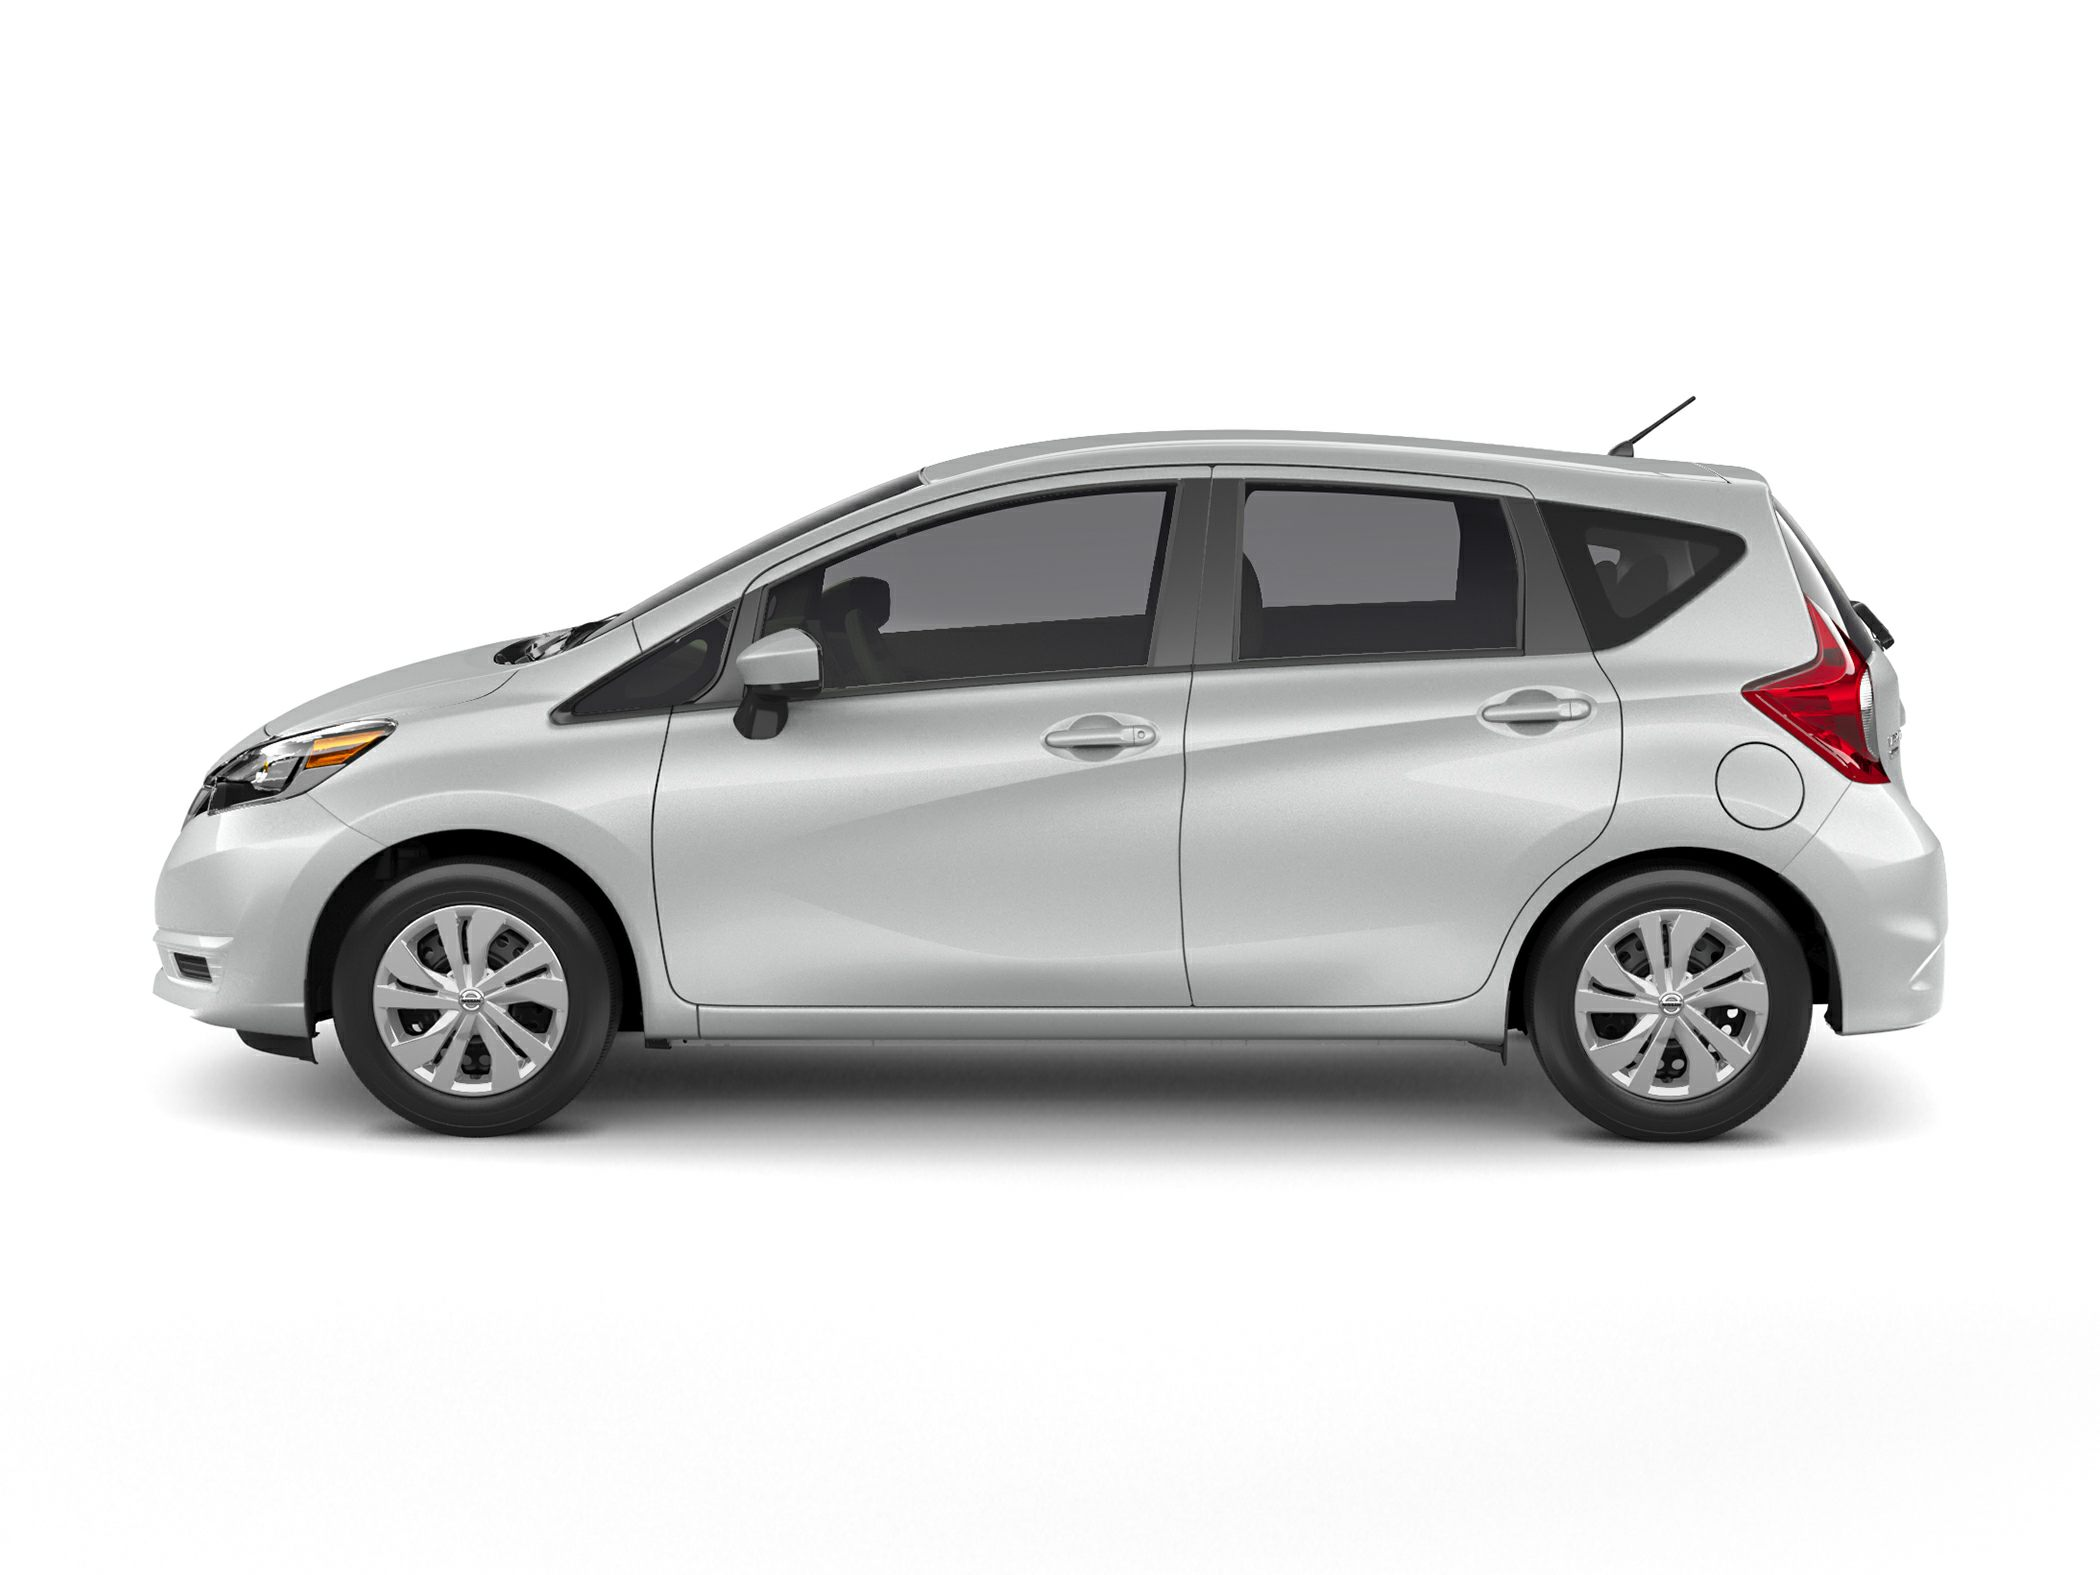 Nissan note photo - 9